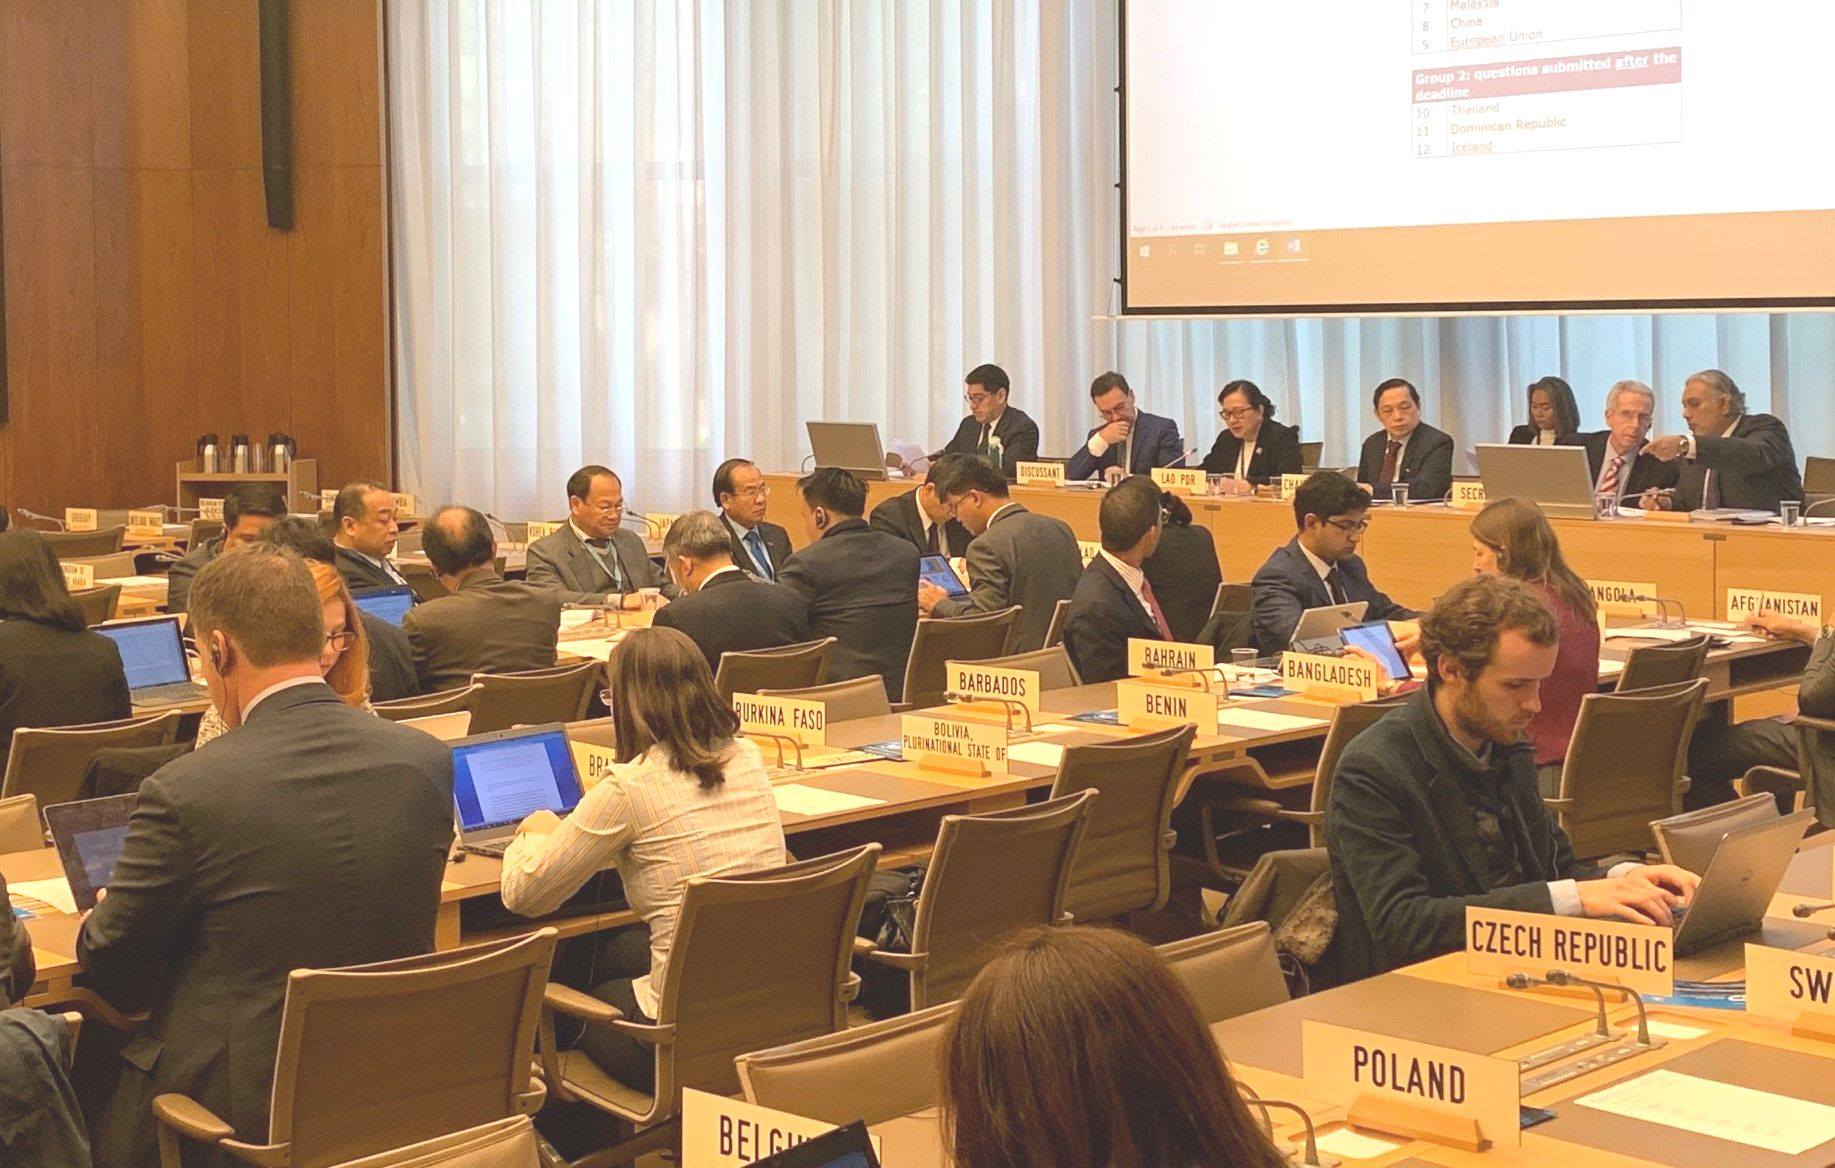 TPR of Lao PDR, WTO Room W, Session 1, 18.11.2019: Remarks of questions from the floor.